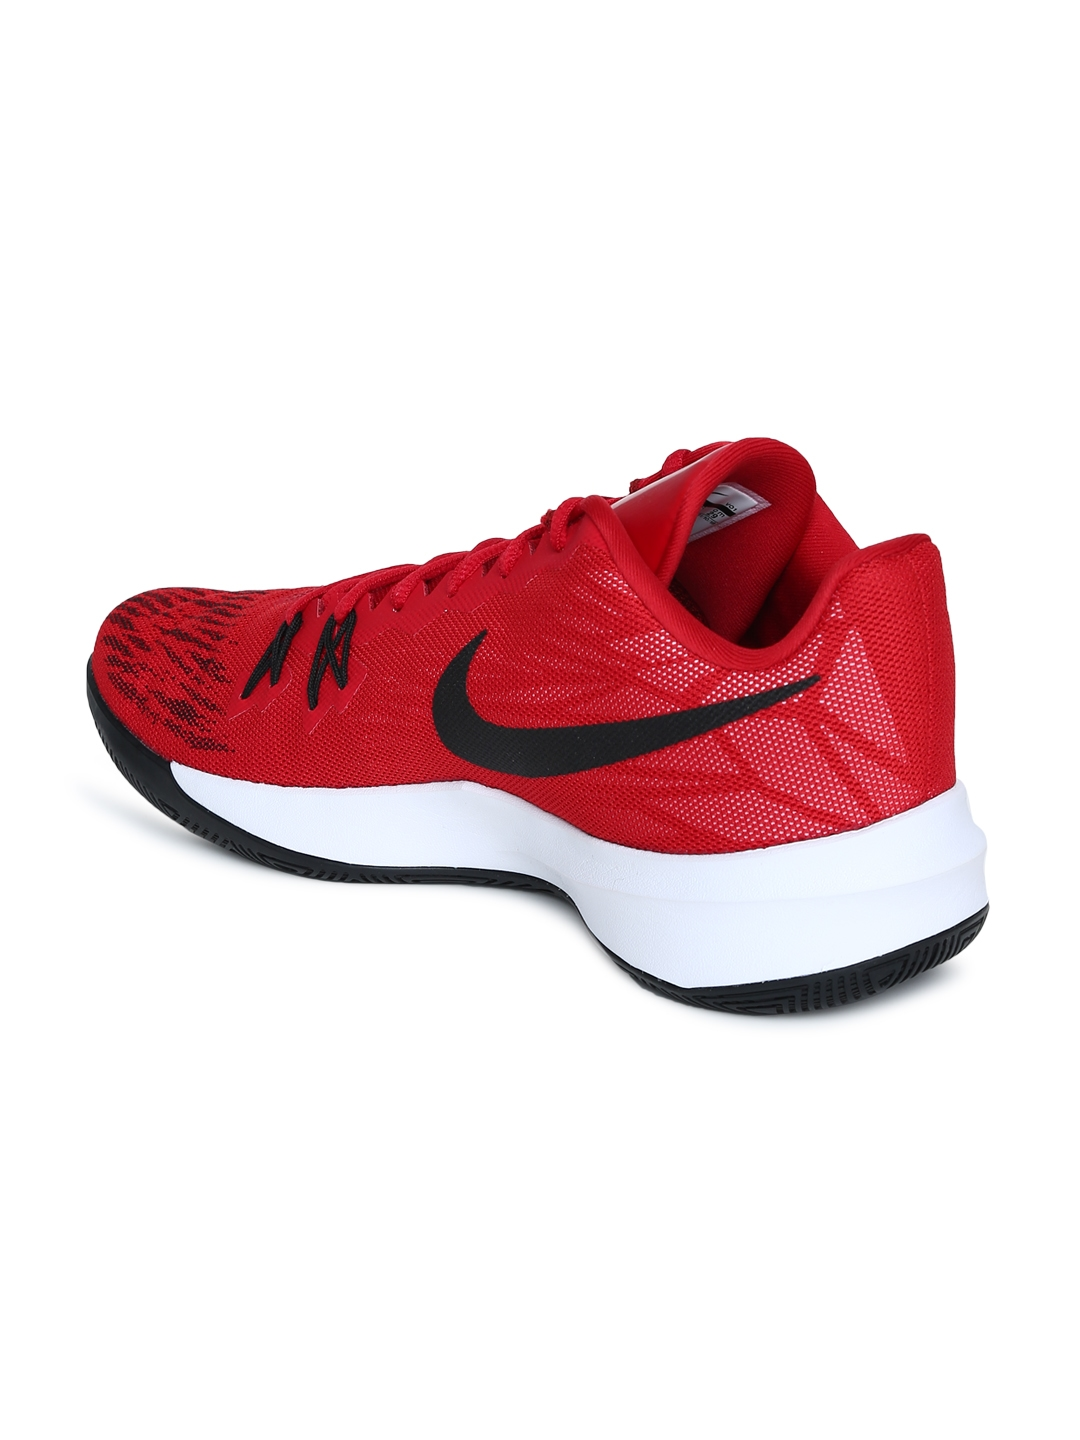 d2ac4ca75ca2 Buy Nike Men Red ZOOM EVIDENCE II Basketball Shoes - Sports Shoes ...